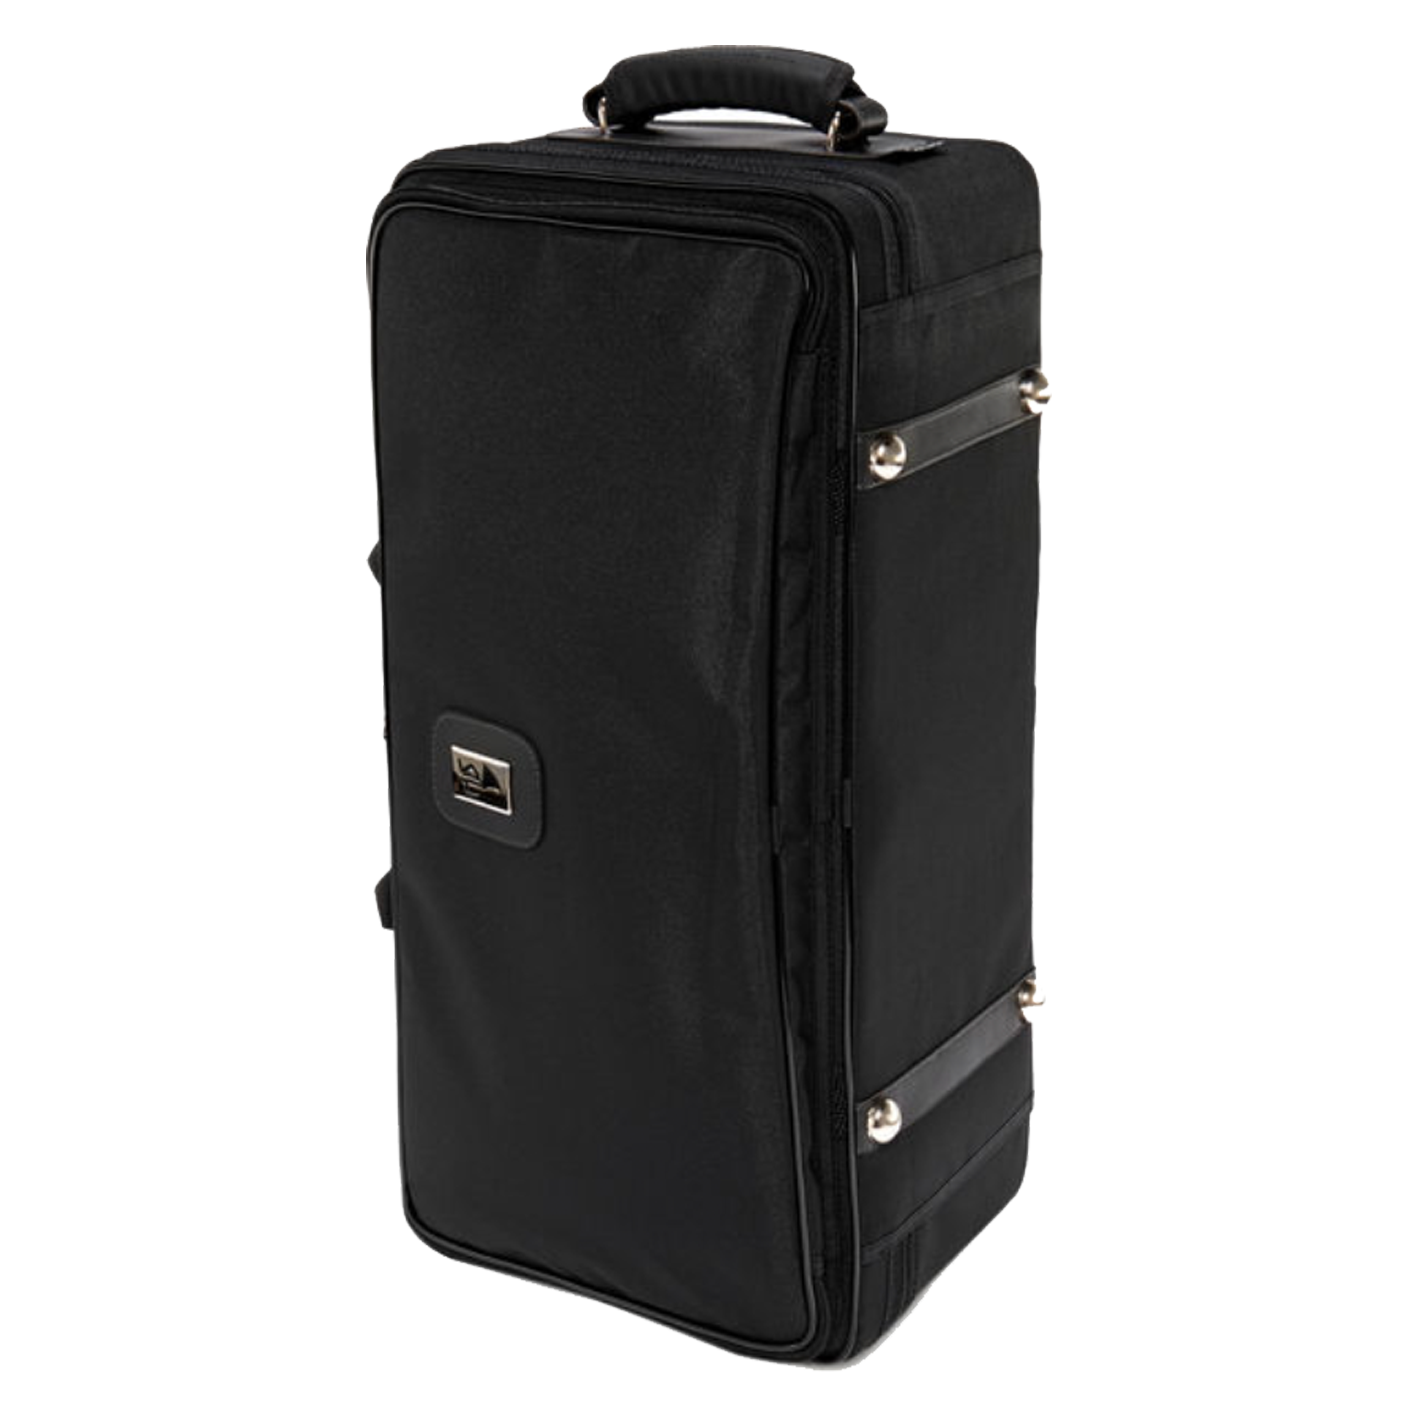 Marcus Bonna - Nylon Compact Triple Trumpet Case-Case-Marcus Bonna-Music Elements